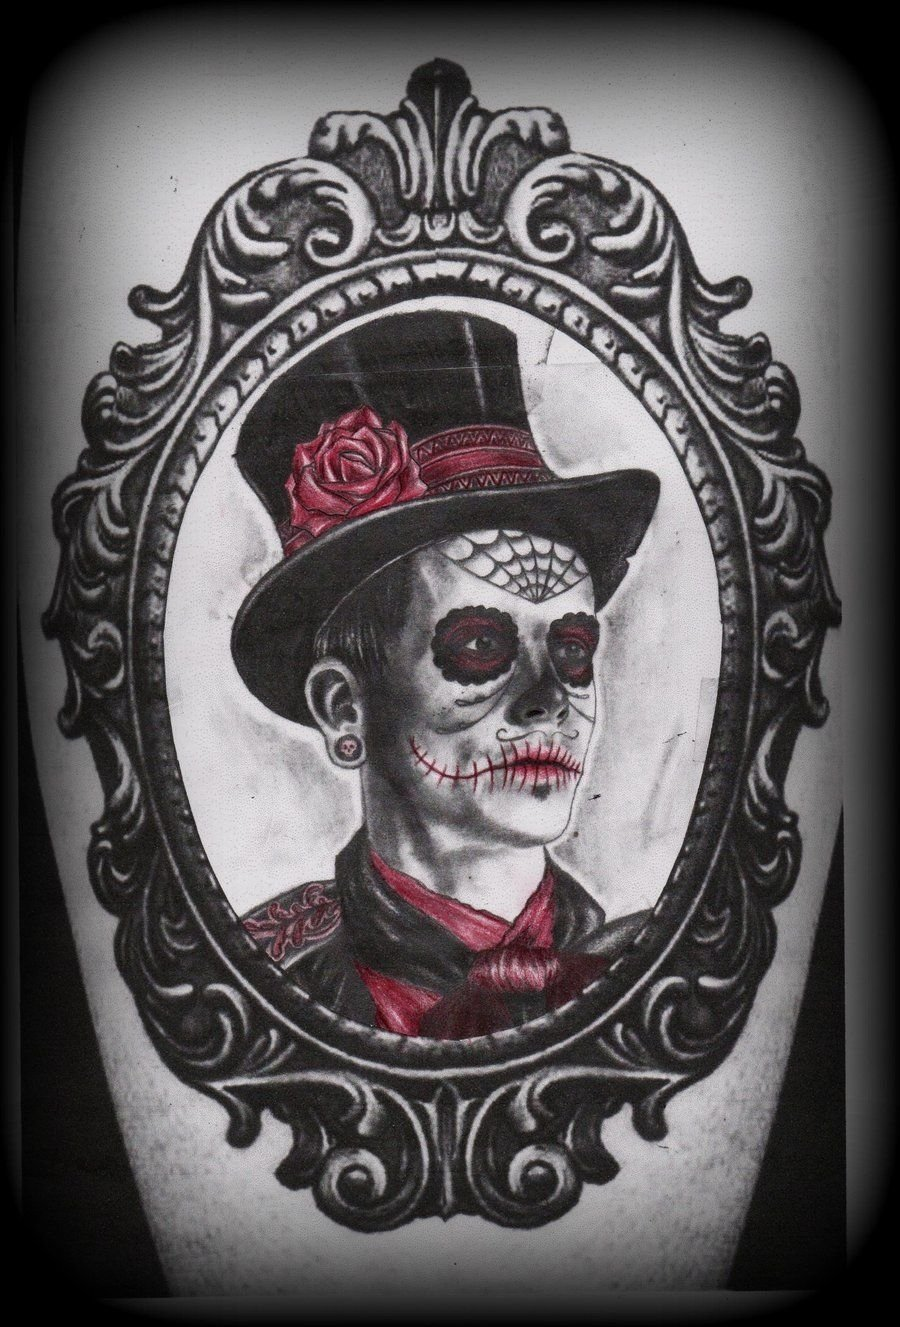 10 Fashionable Day Of The Dead Tattoo Ideas 44 day of the dead tattoos gallery framed tattoo tattoo and 2021